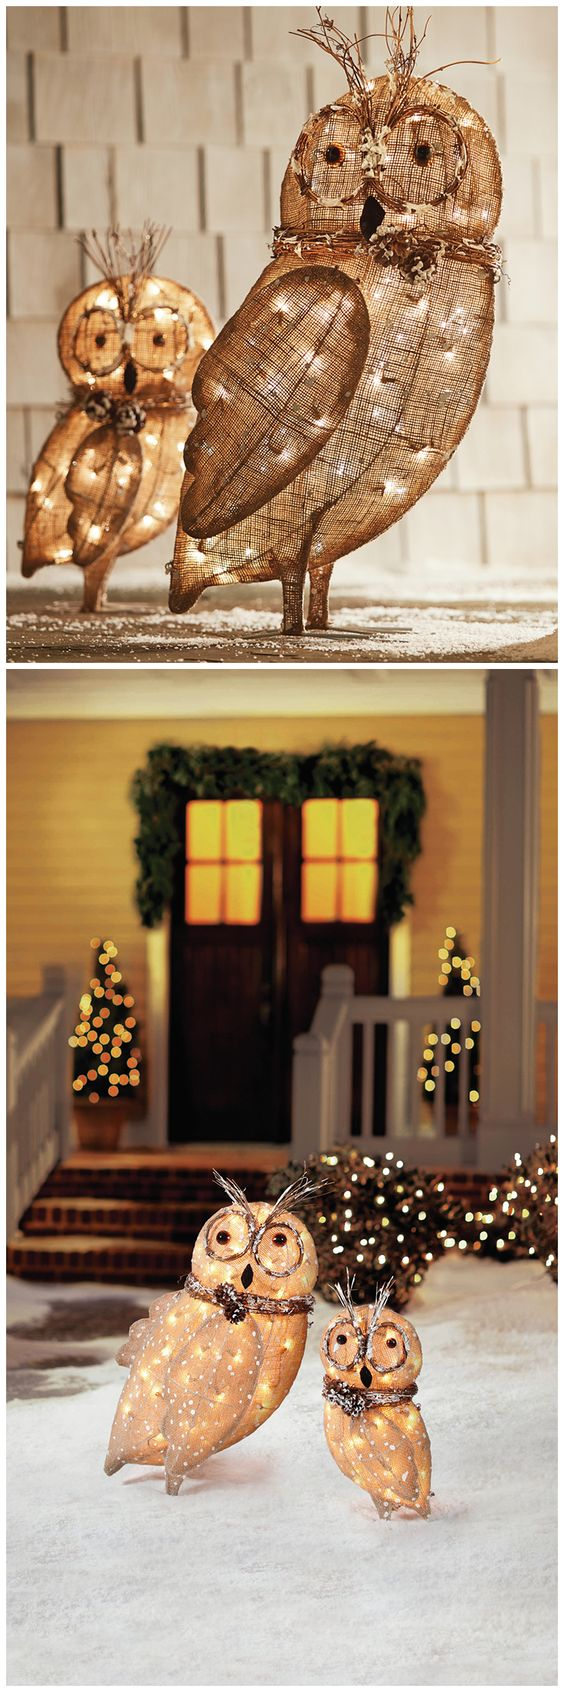 Outdoor christmas owl and holiday looks on pinterest Classic outdoor christmas decorations